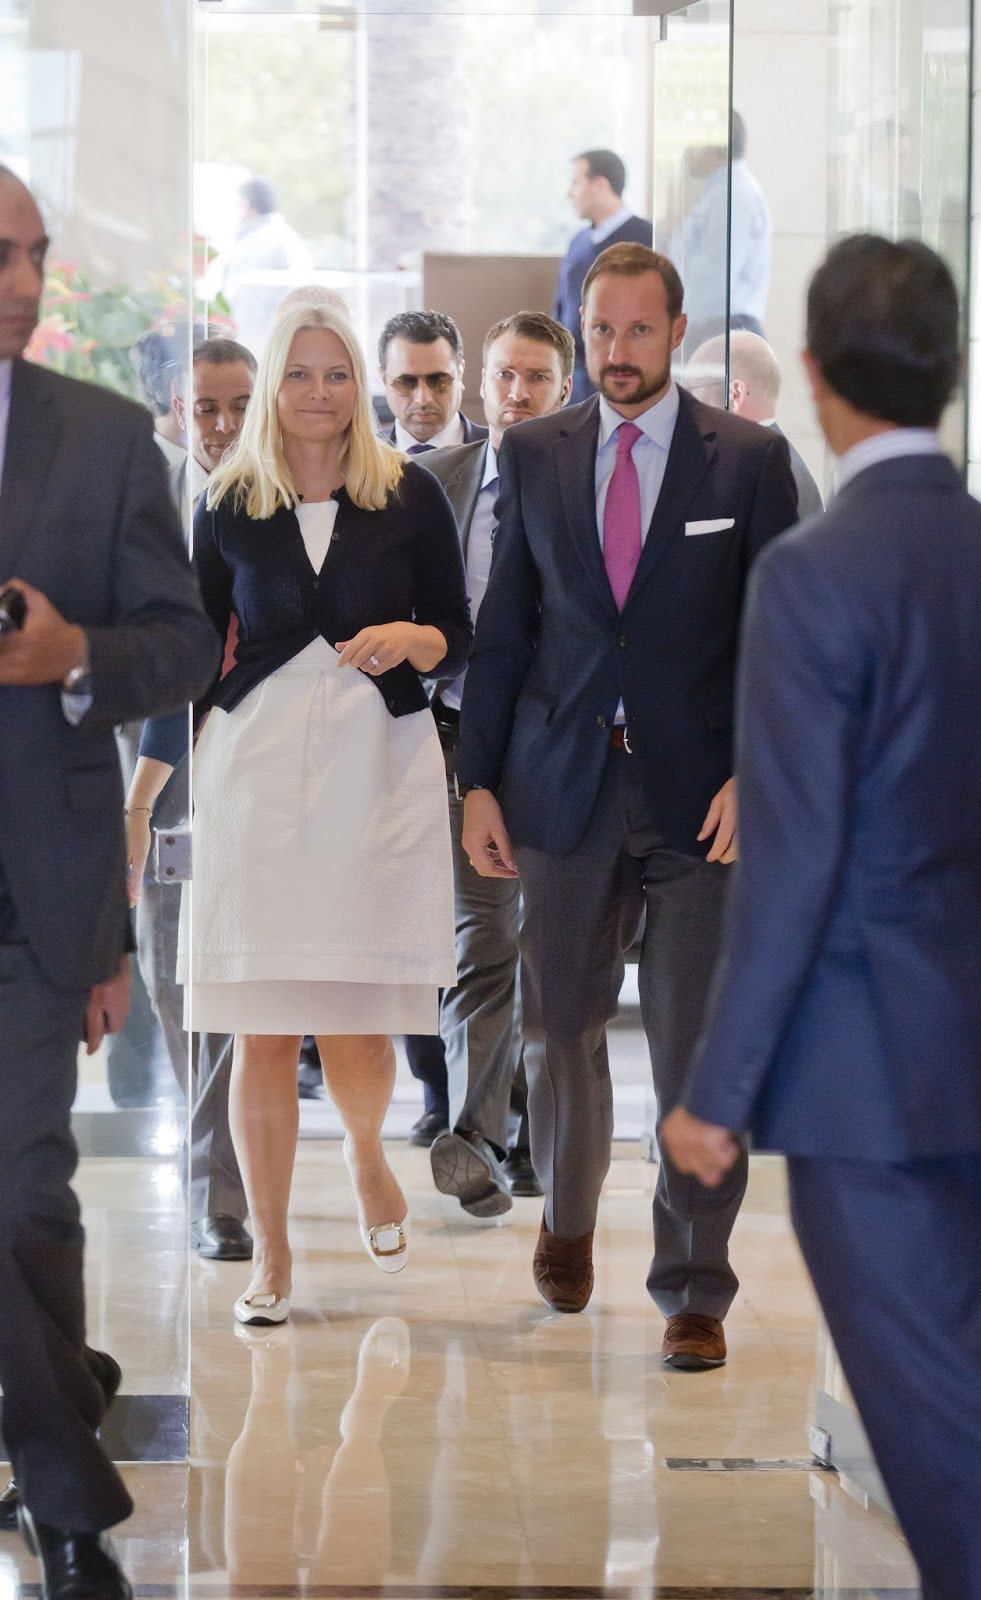 Crown Prince Haakon and Crown Princess Mette-Marit visits the Jordan